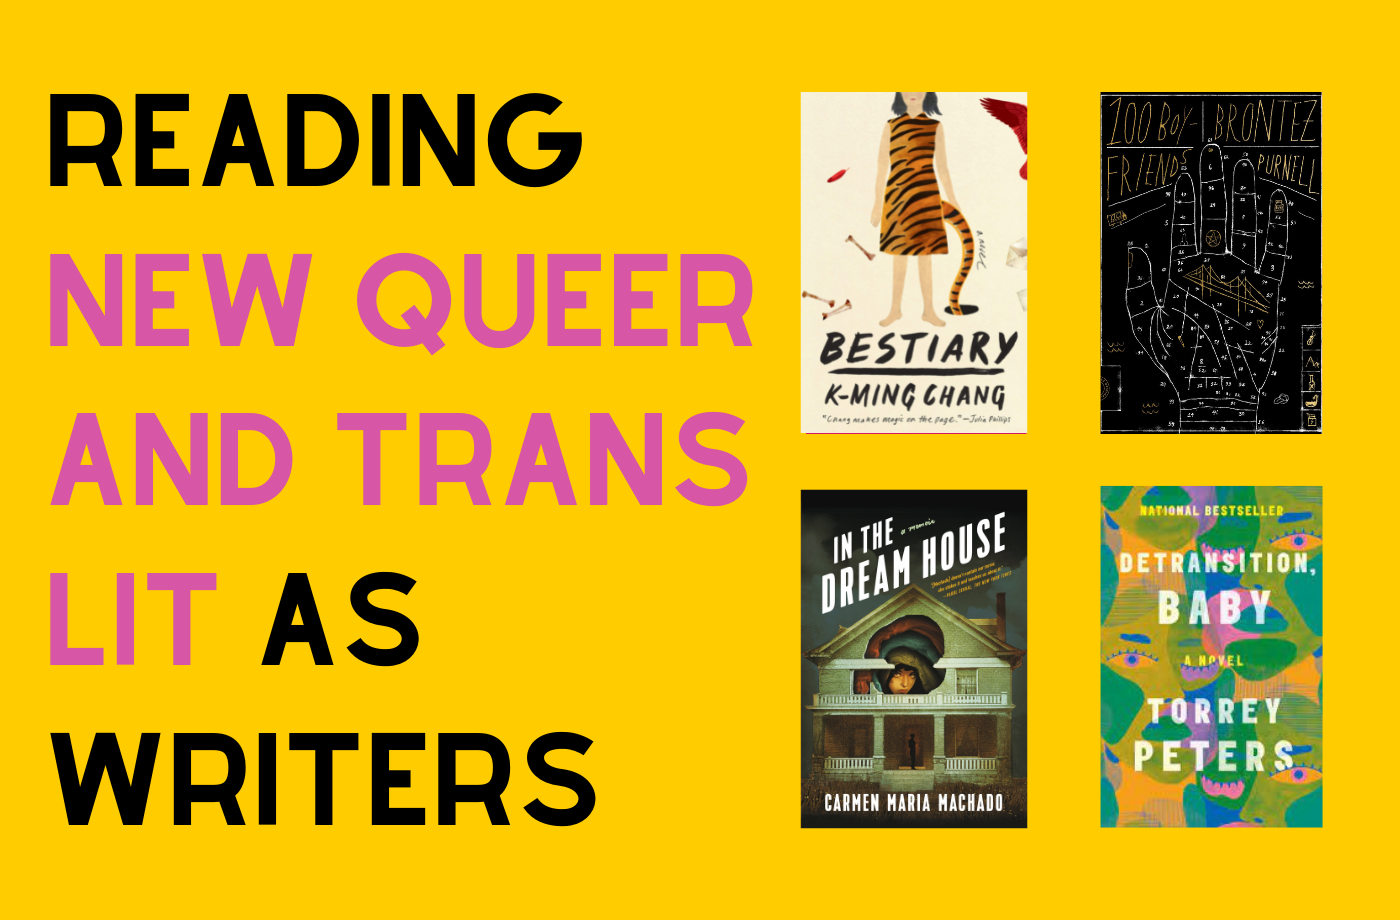 Catapult online classes: Megan Milks, 4 Weeks of Reading New Queer & Trans Lit as Writers, Nonfiction, Reading Group